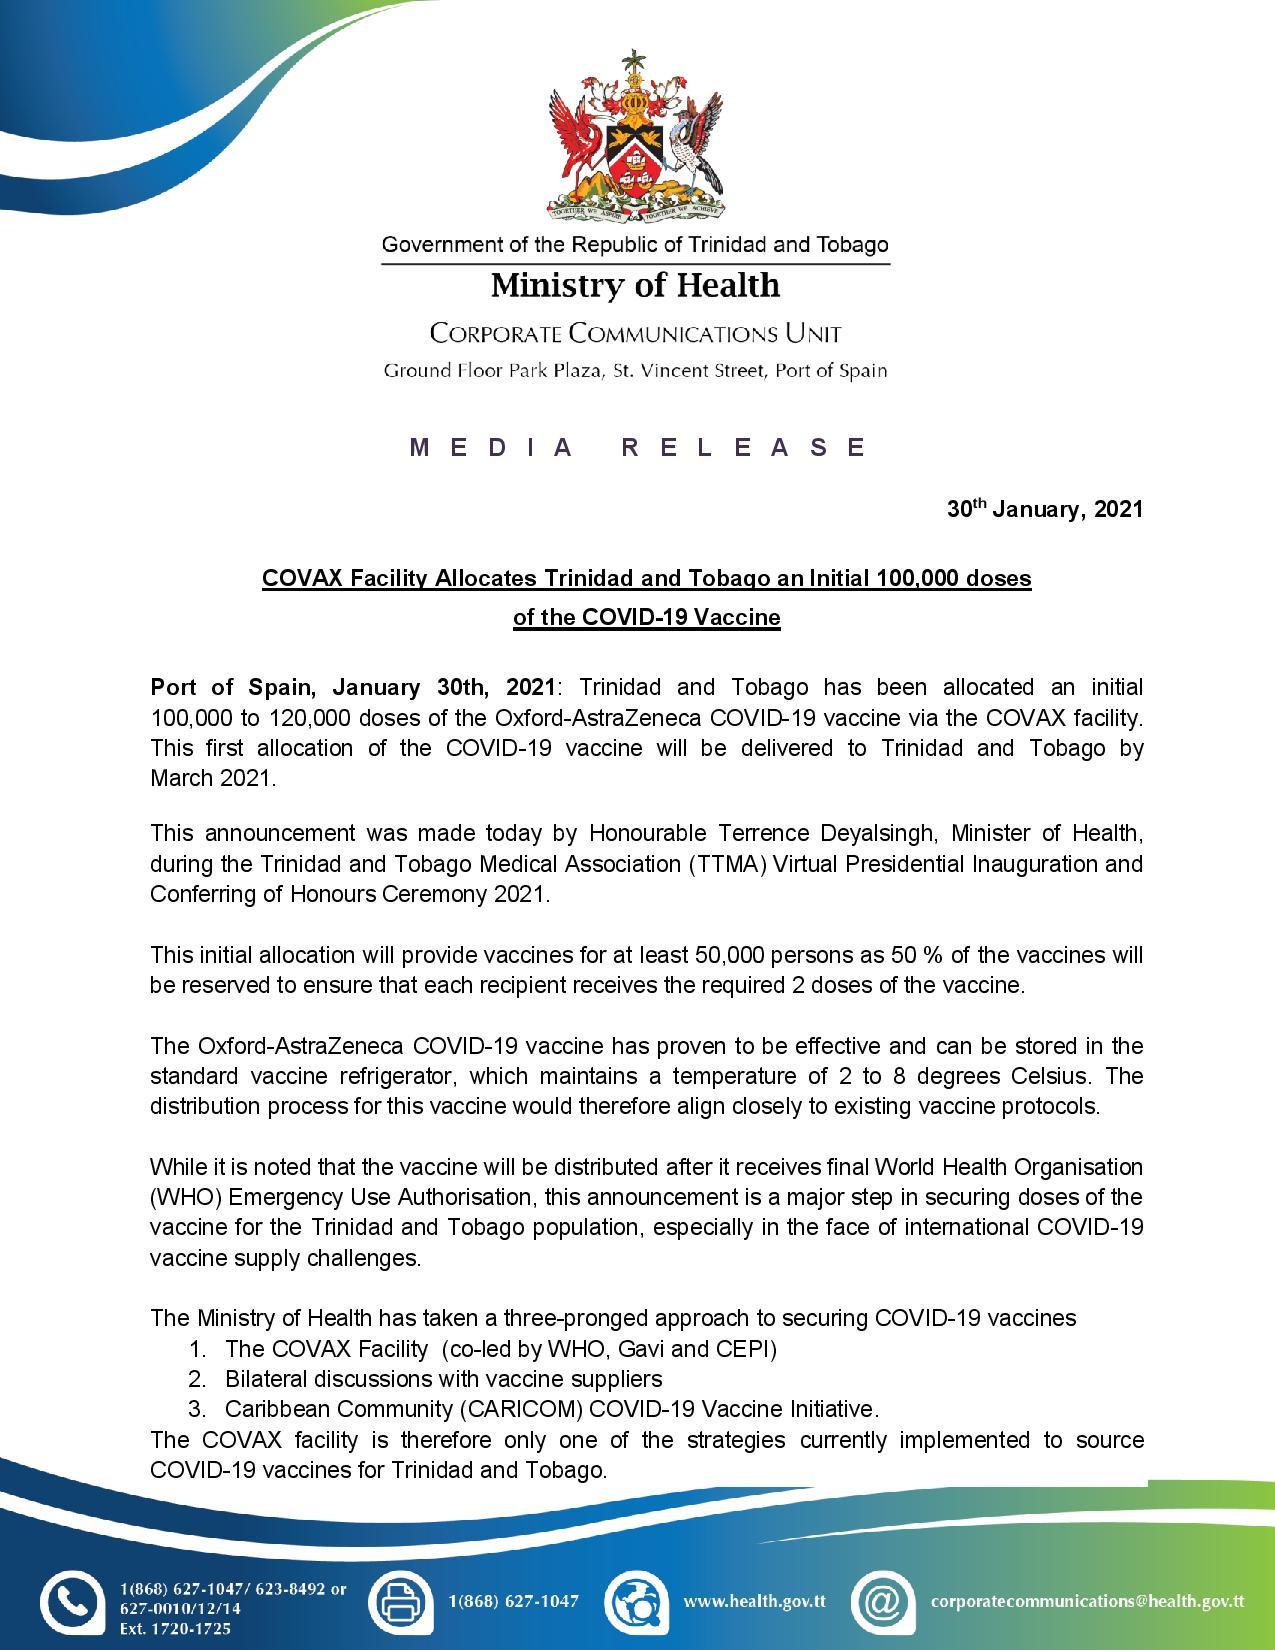 rinidad and Tobago allocated an initial 100,000 COVID-19 Vaccine doses page 1